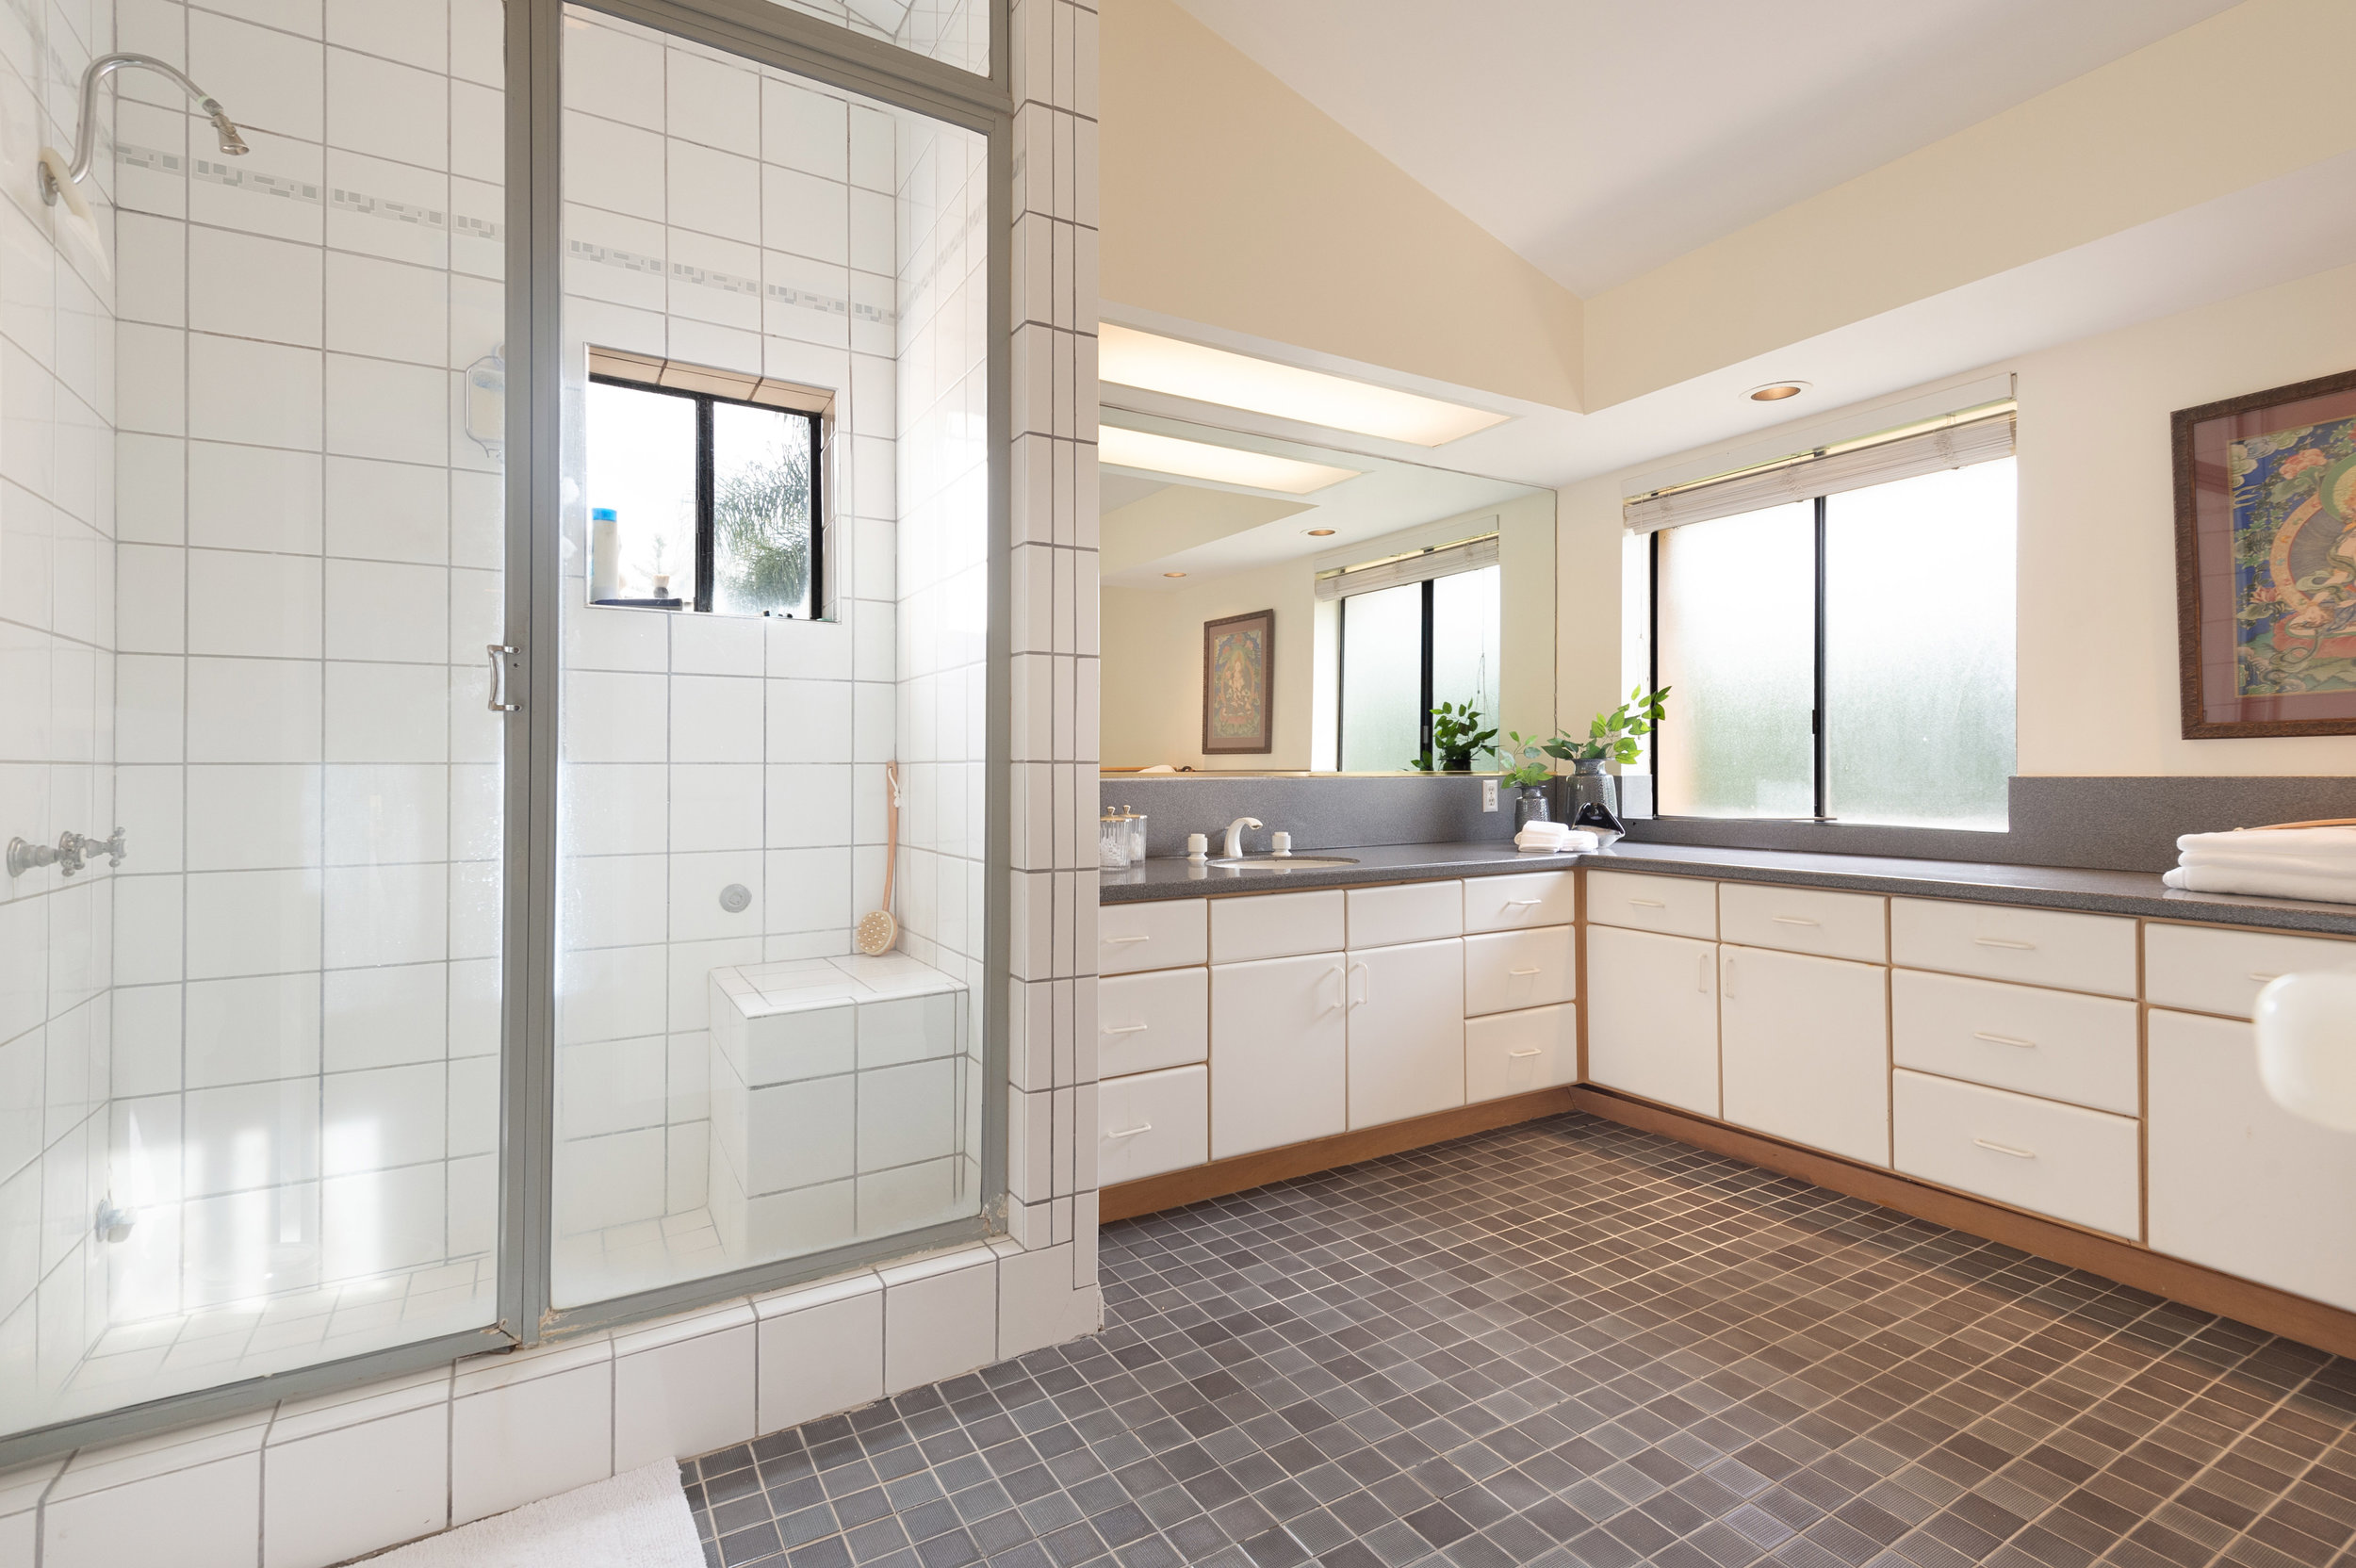 017 Master Bathroom 12027 Talus Place Beverly Hills 90210 For Sale Lease The Malibu Life Team Luxury Real Estate.jpg